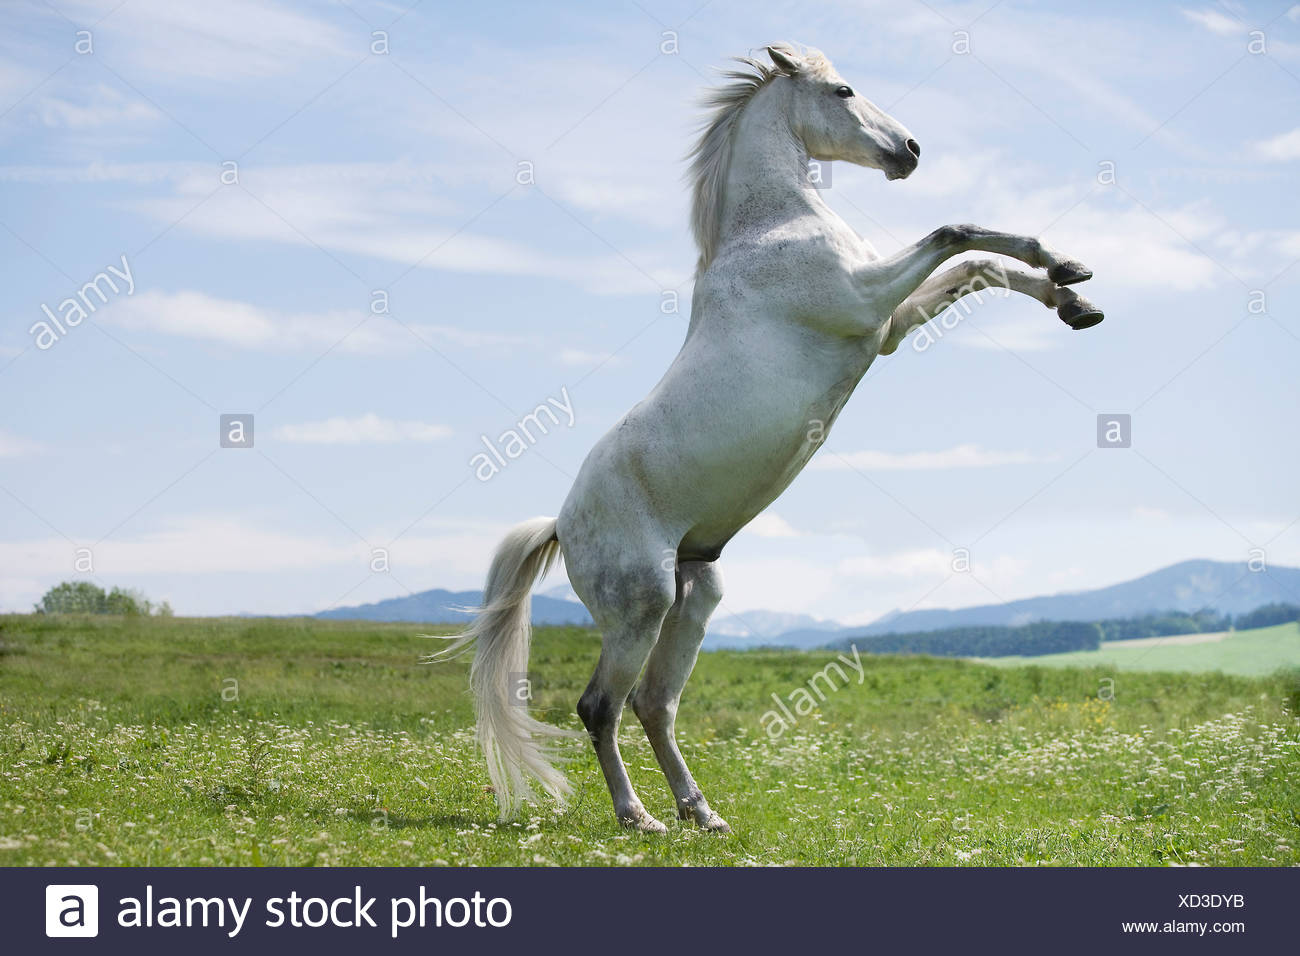 White Horse Jumping On High Resolution Stock Photography And Images Alamy